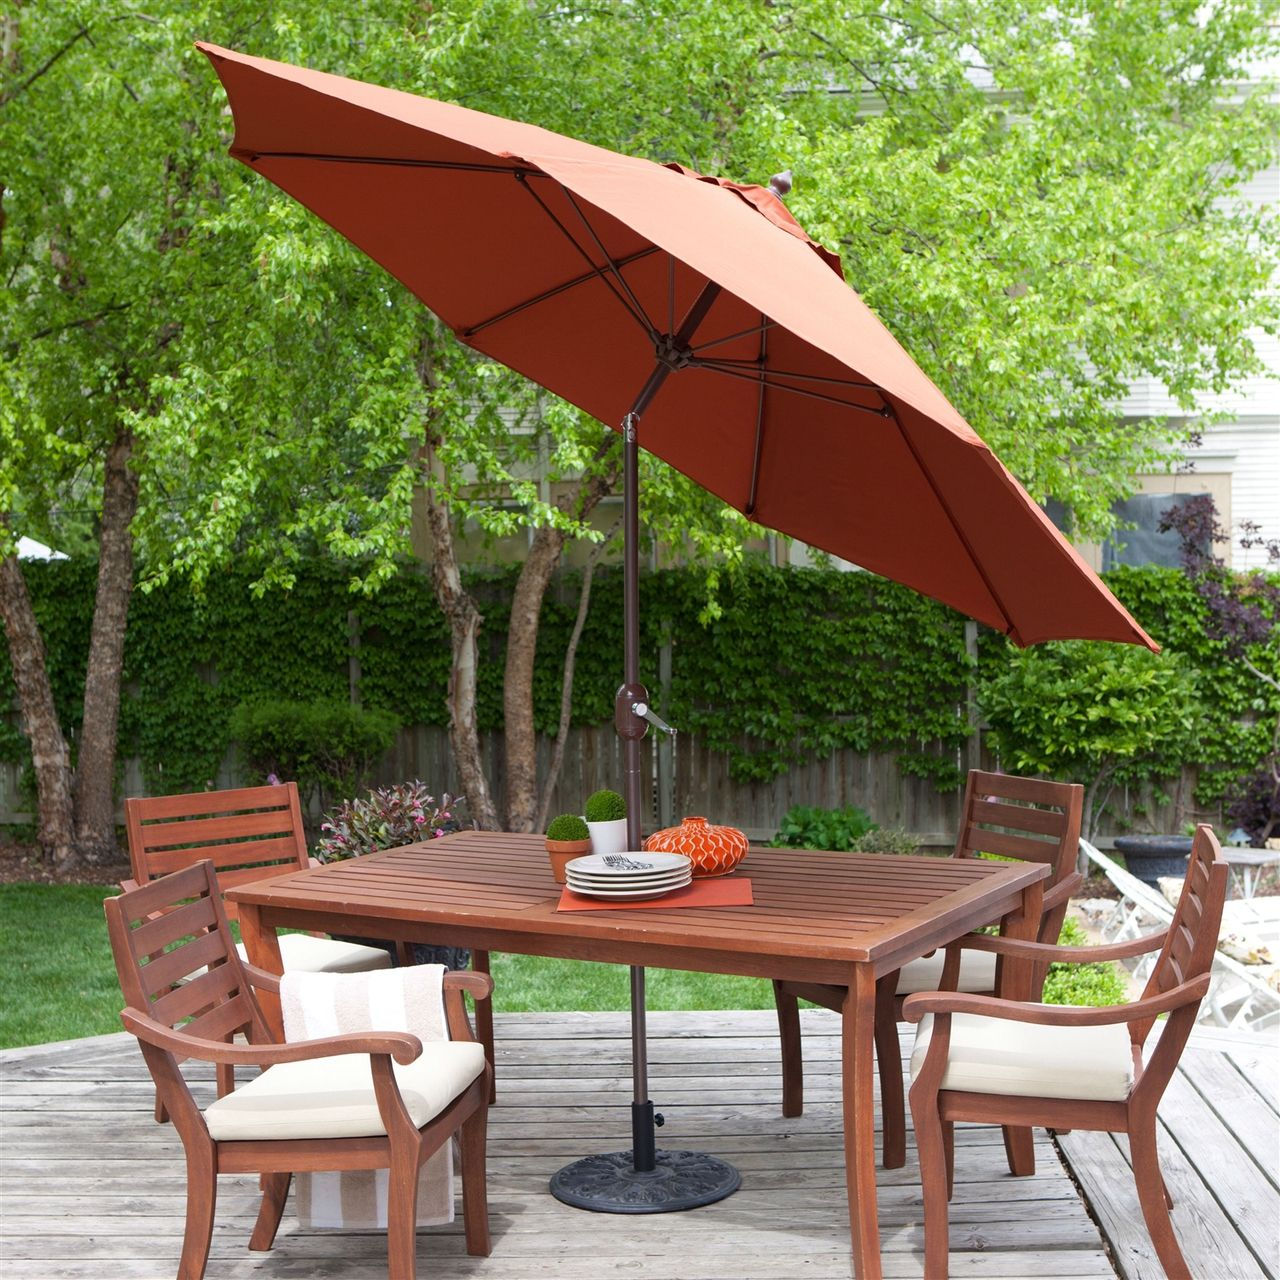 9 Ft Tilt Patio Umbrella With Rust Red Orange Shade And Bronze Finish Pole